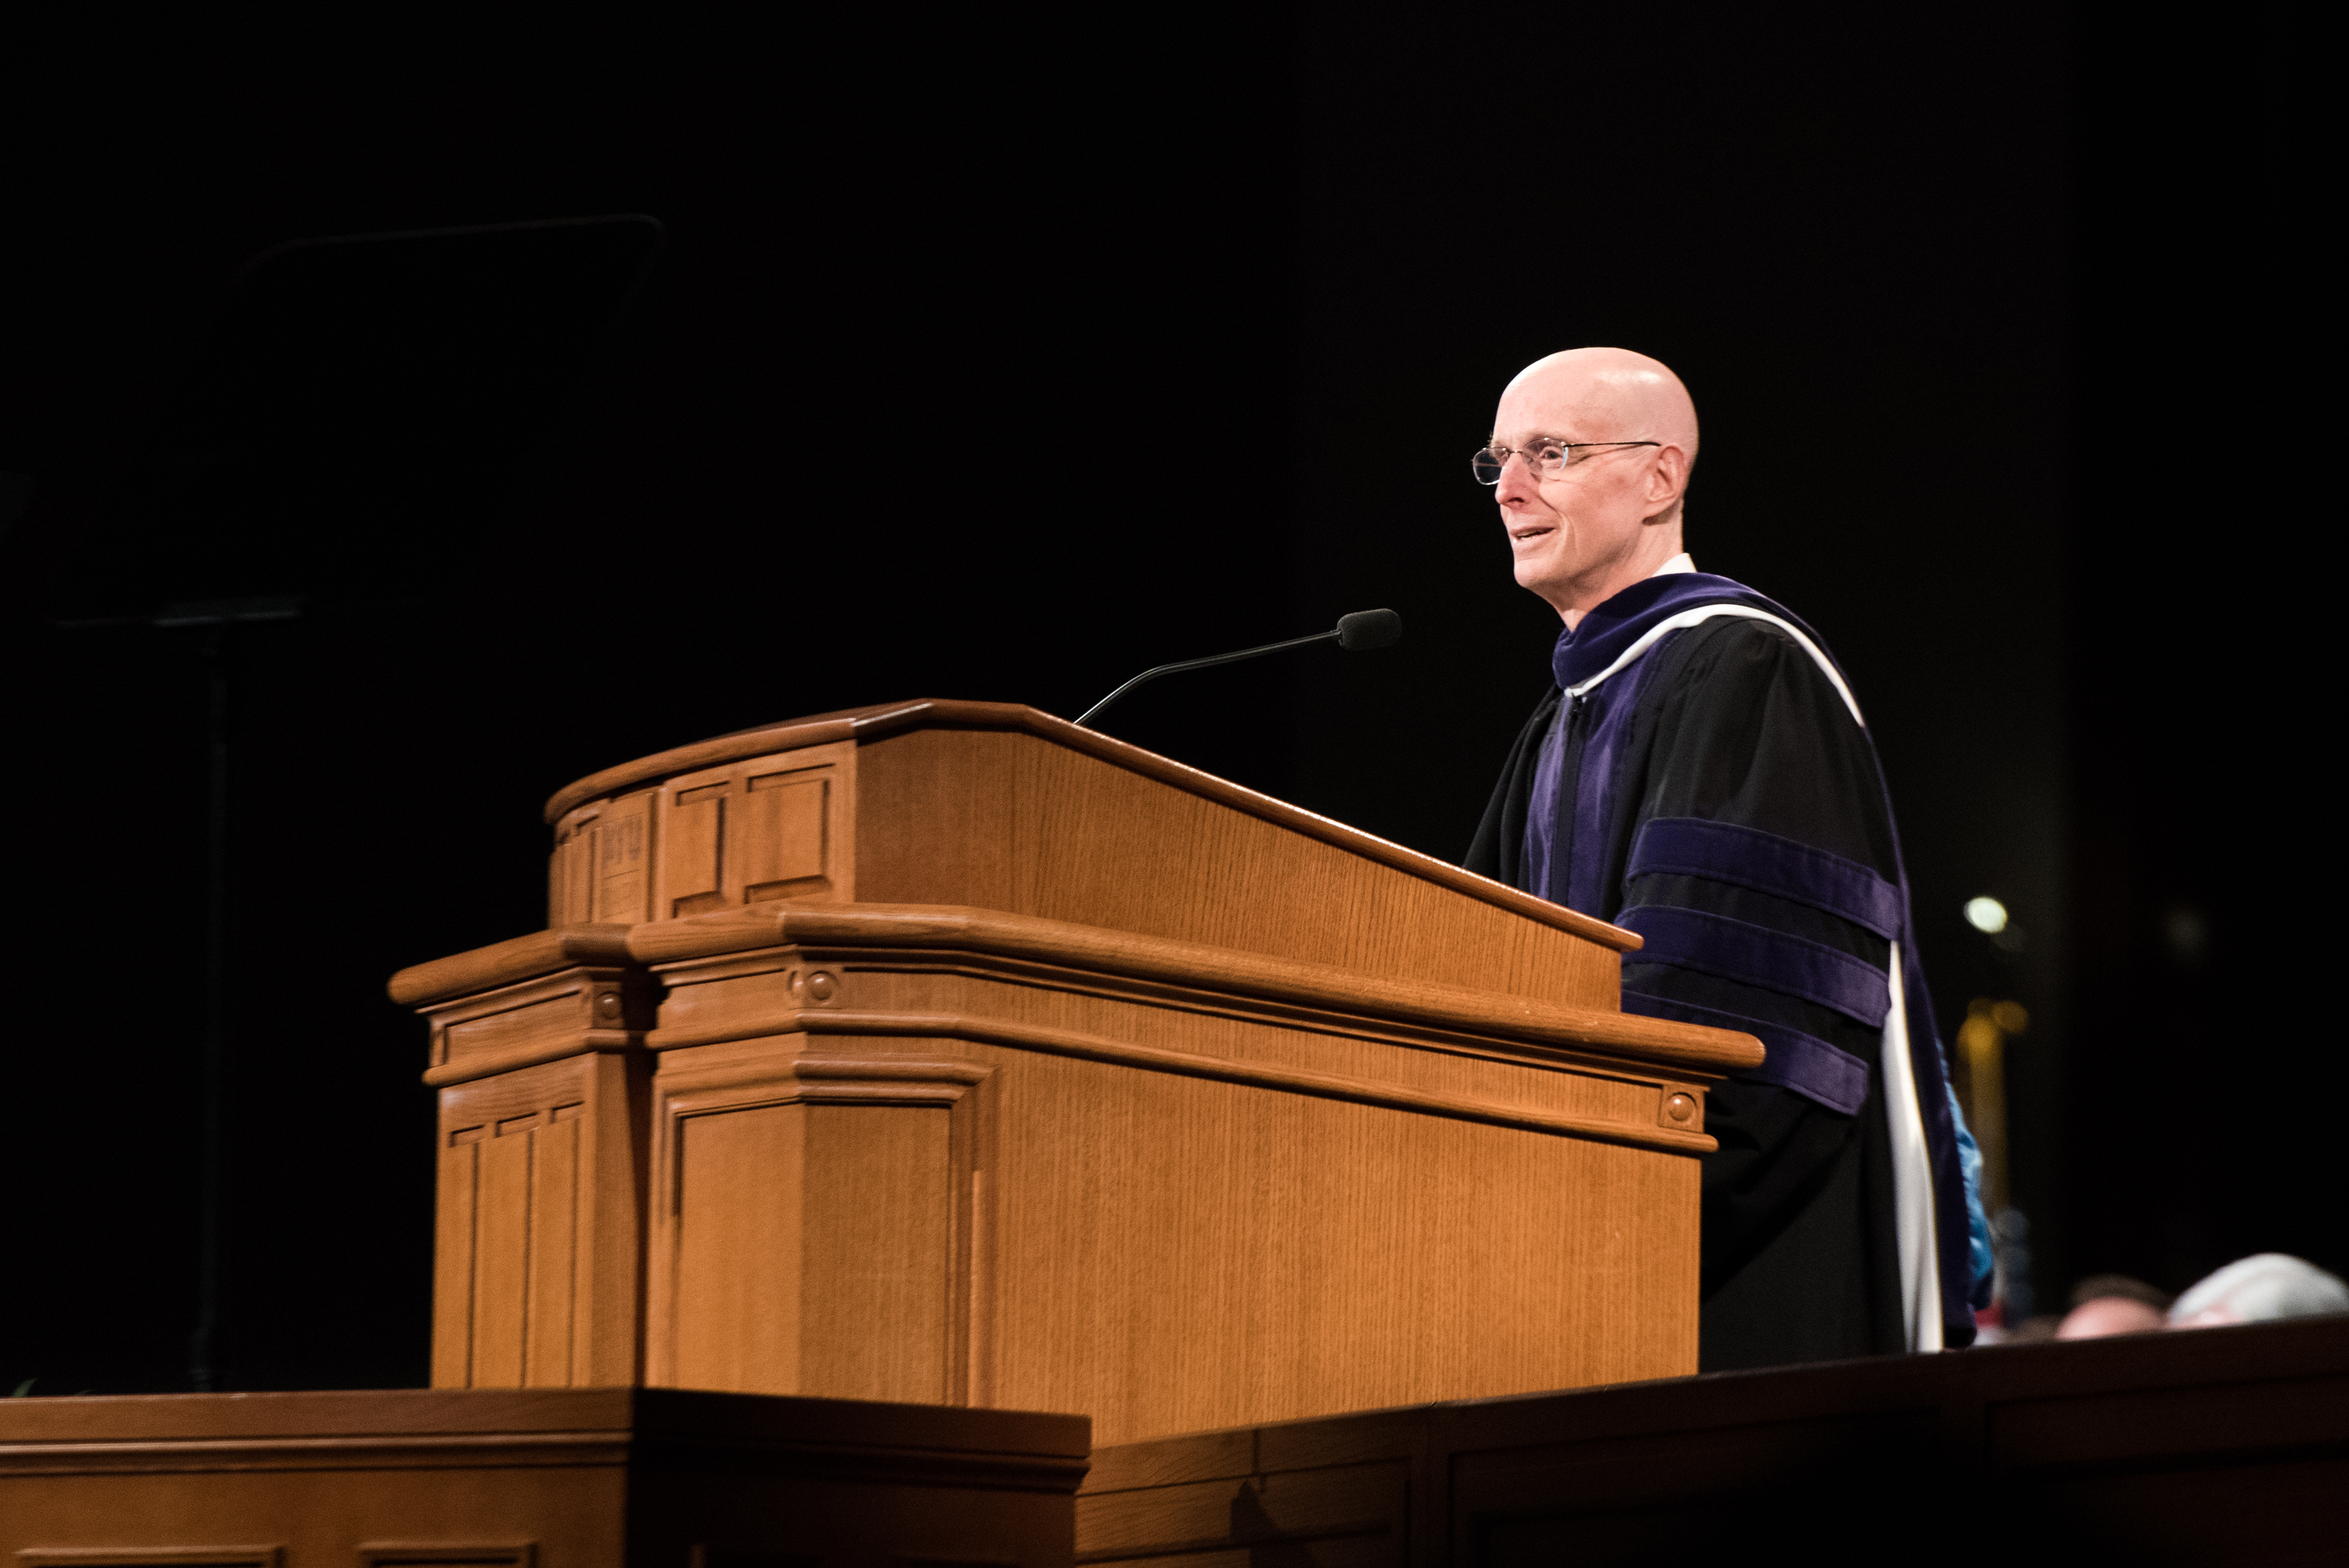 BYU-Idaho President Henry J. Eyring addresses the graduates at the Winter Semester Commencement on April 12, 2019.